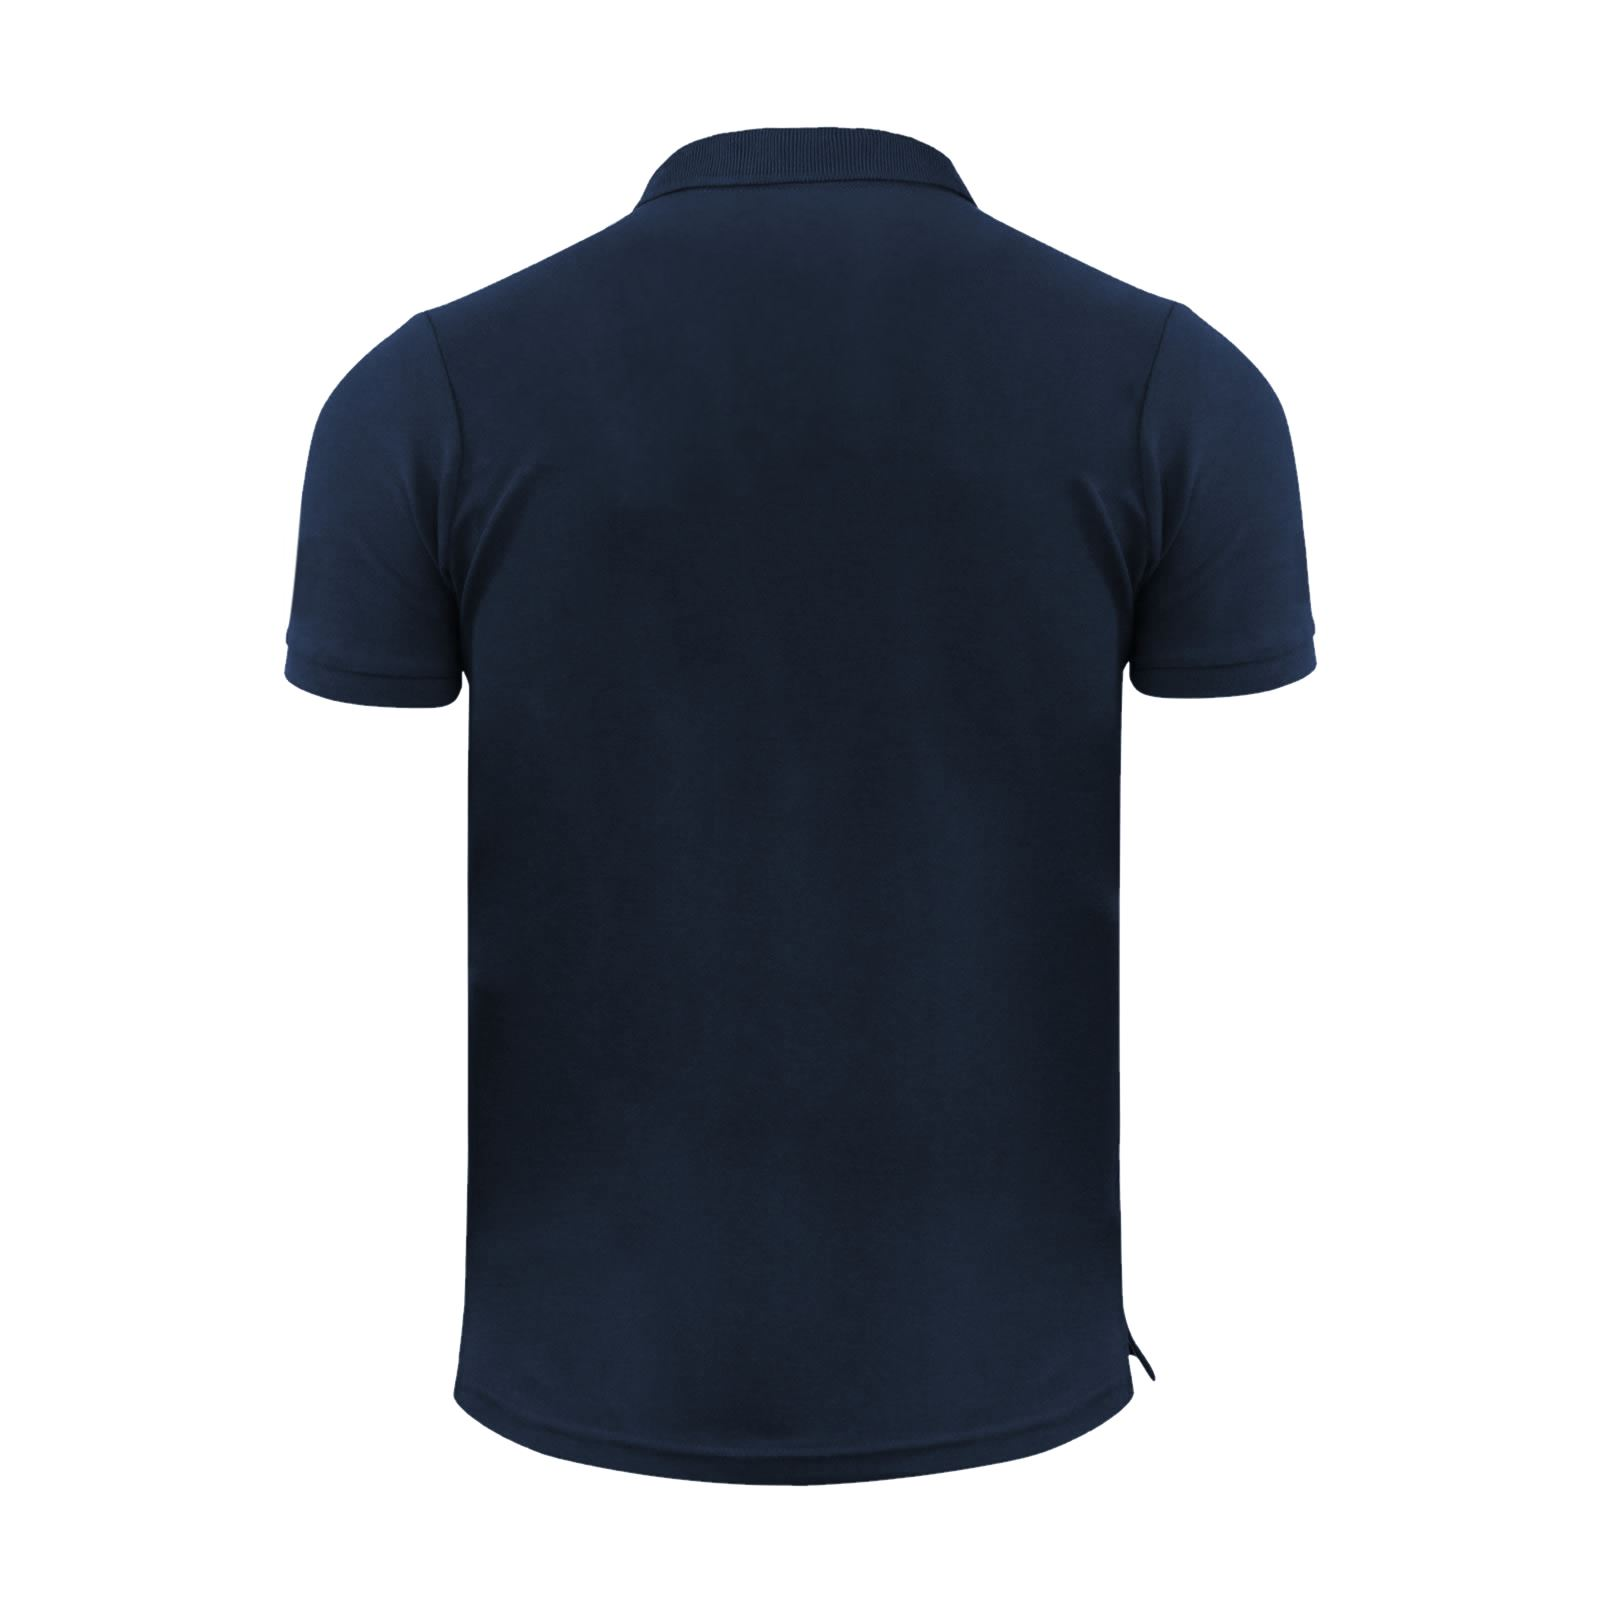 Crosshatch-Mens-Polo-T-Shirt-Pique-Polo-Cotton-Collared-Short-Sleeve-T-Shirt thumbnail 3